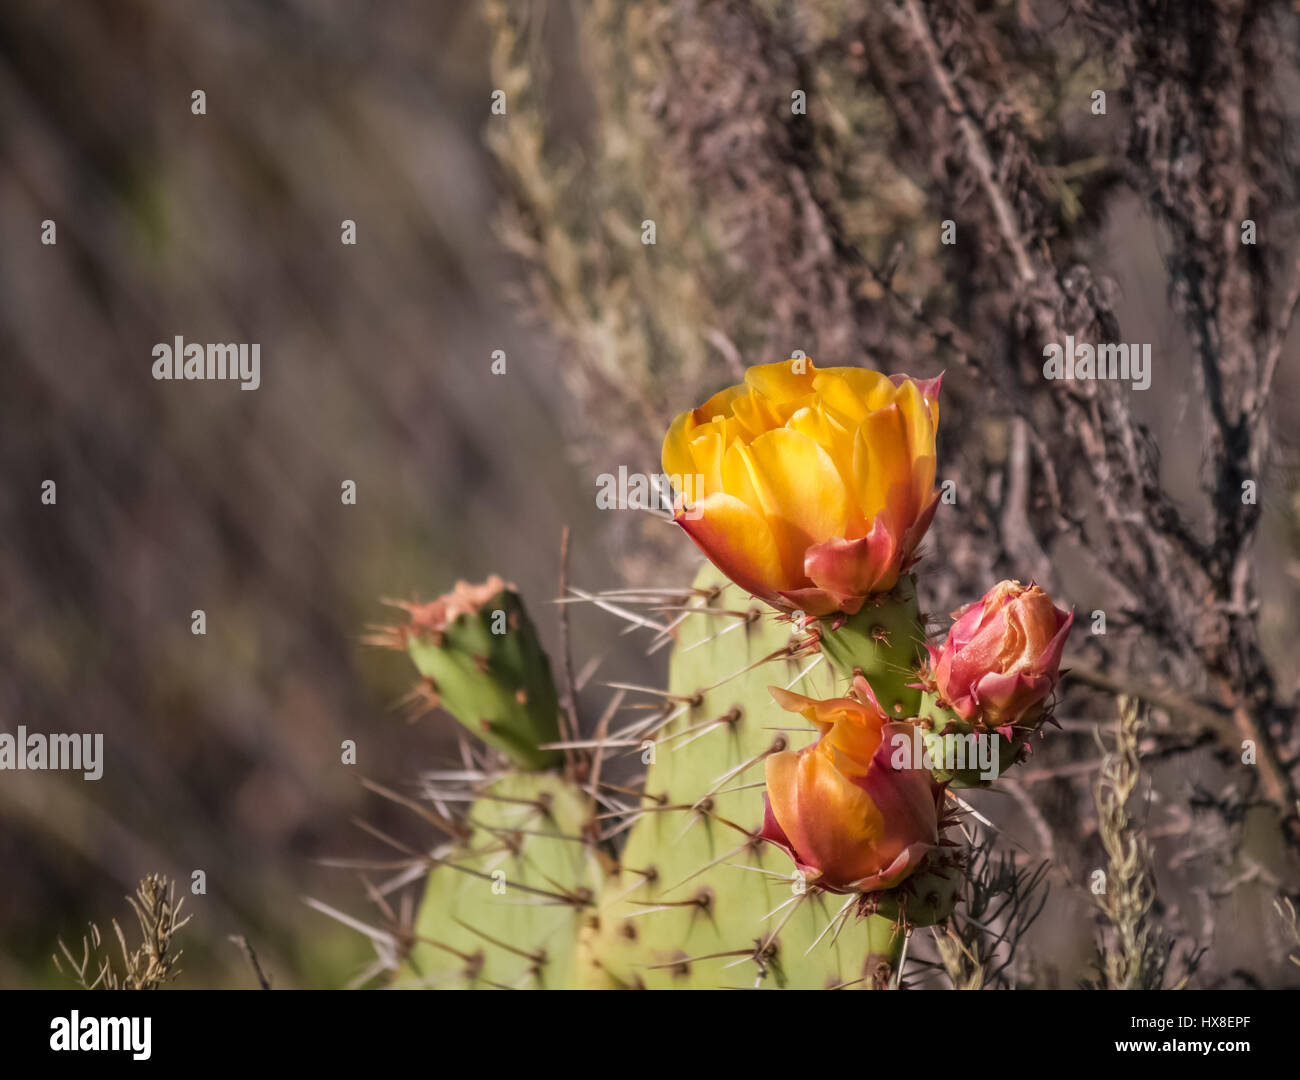 prickly pear cactus flower close up blurred background Stock Photo